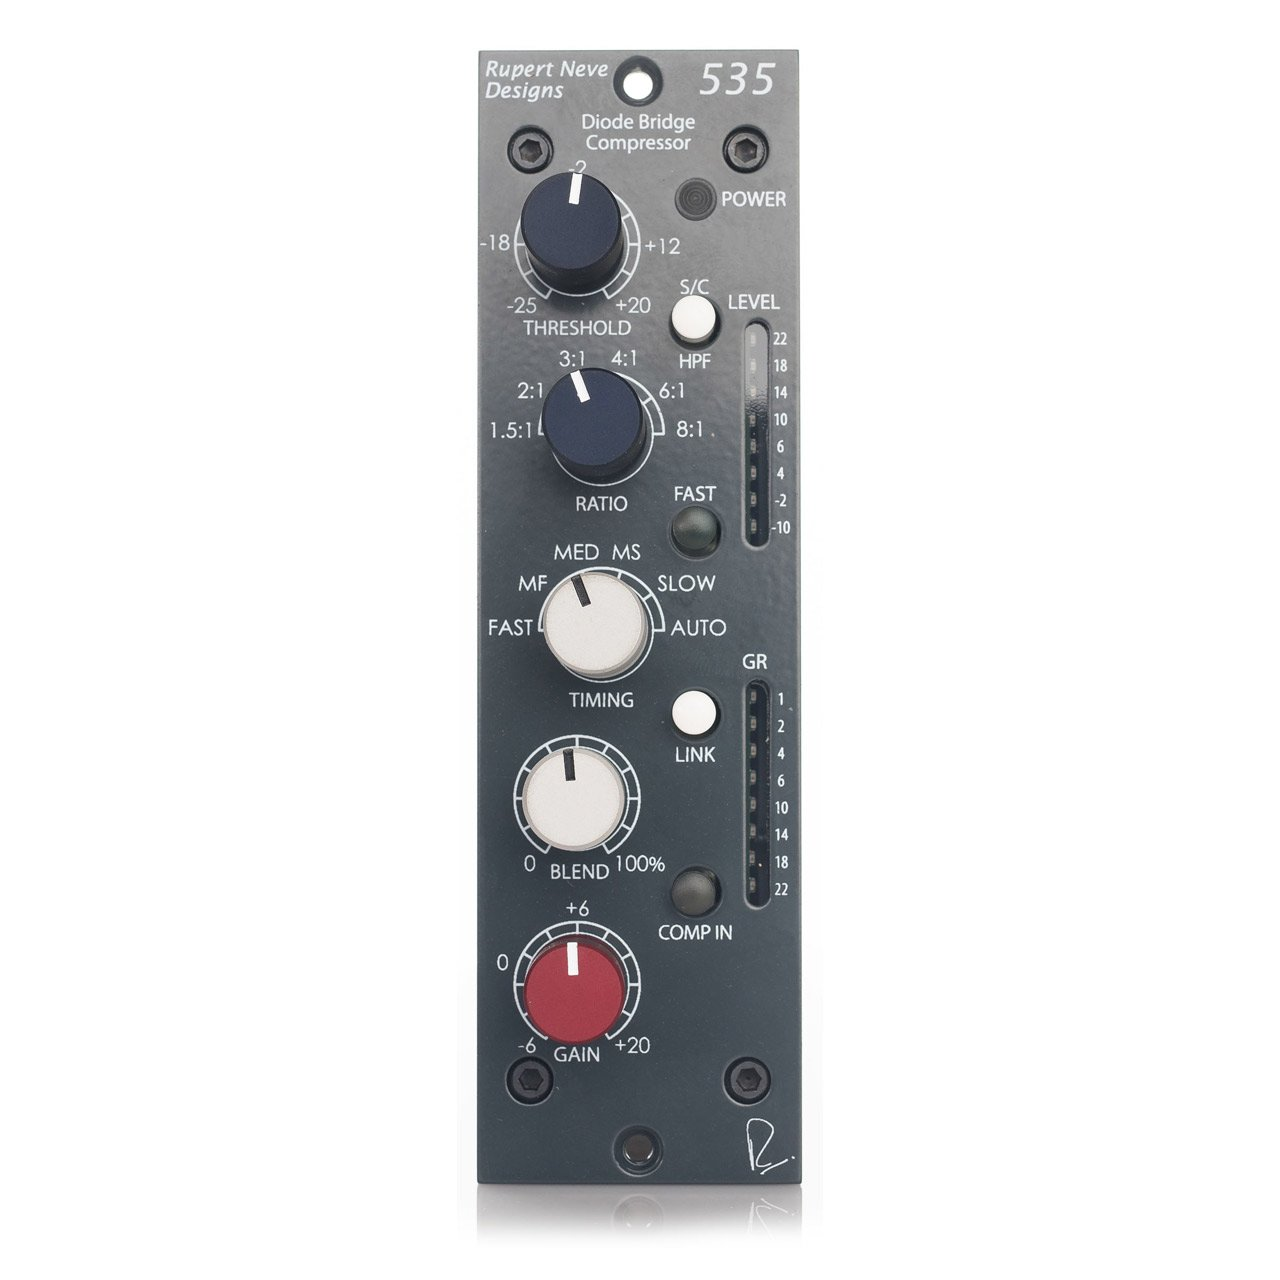 500 Series - Rupert Neve Designs 535 Diode Bridge Compressor